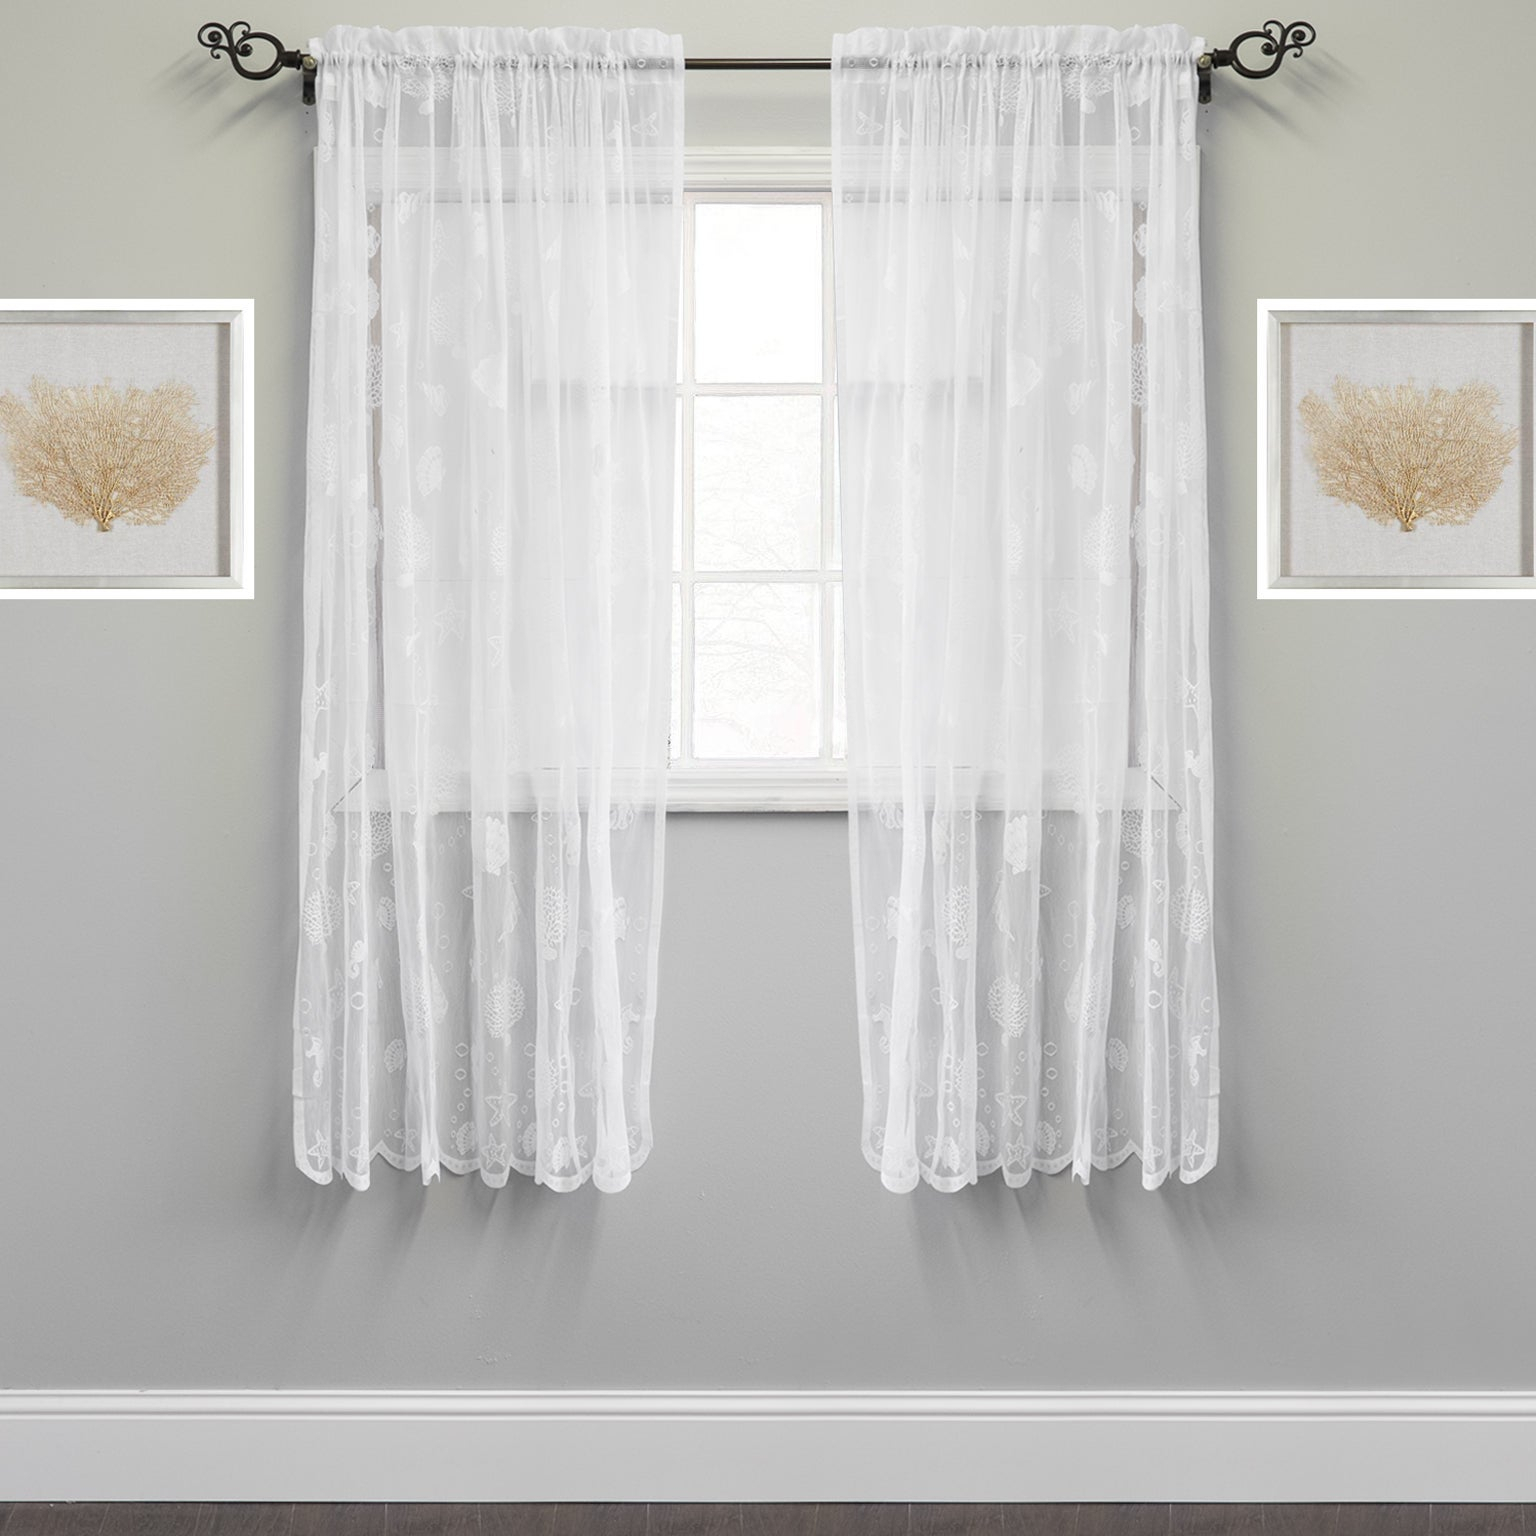 Marine Life Motif Knitted Lace Window Curtain Panel Throughout Ivory Knit Lace Bird Motif Window Curtain (View 10 of 20)